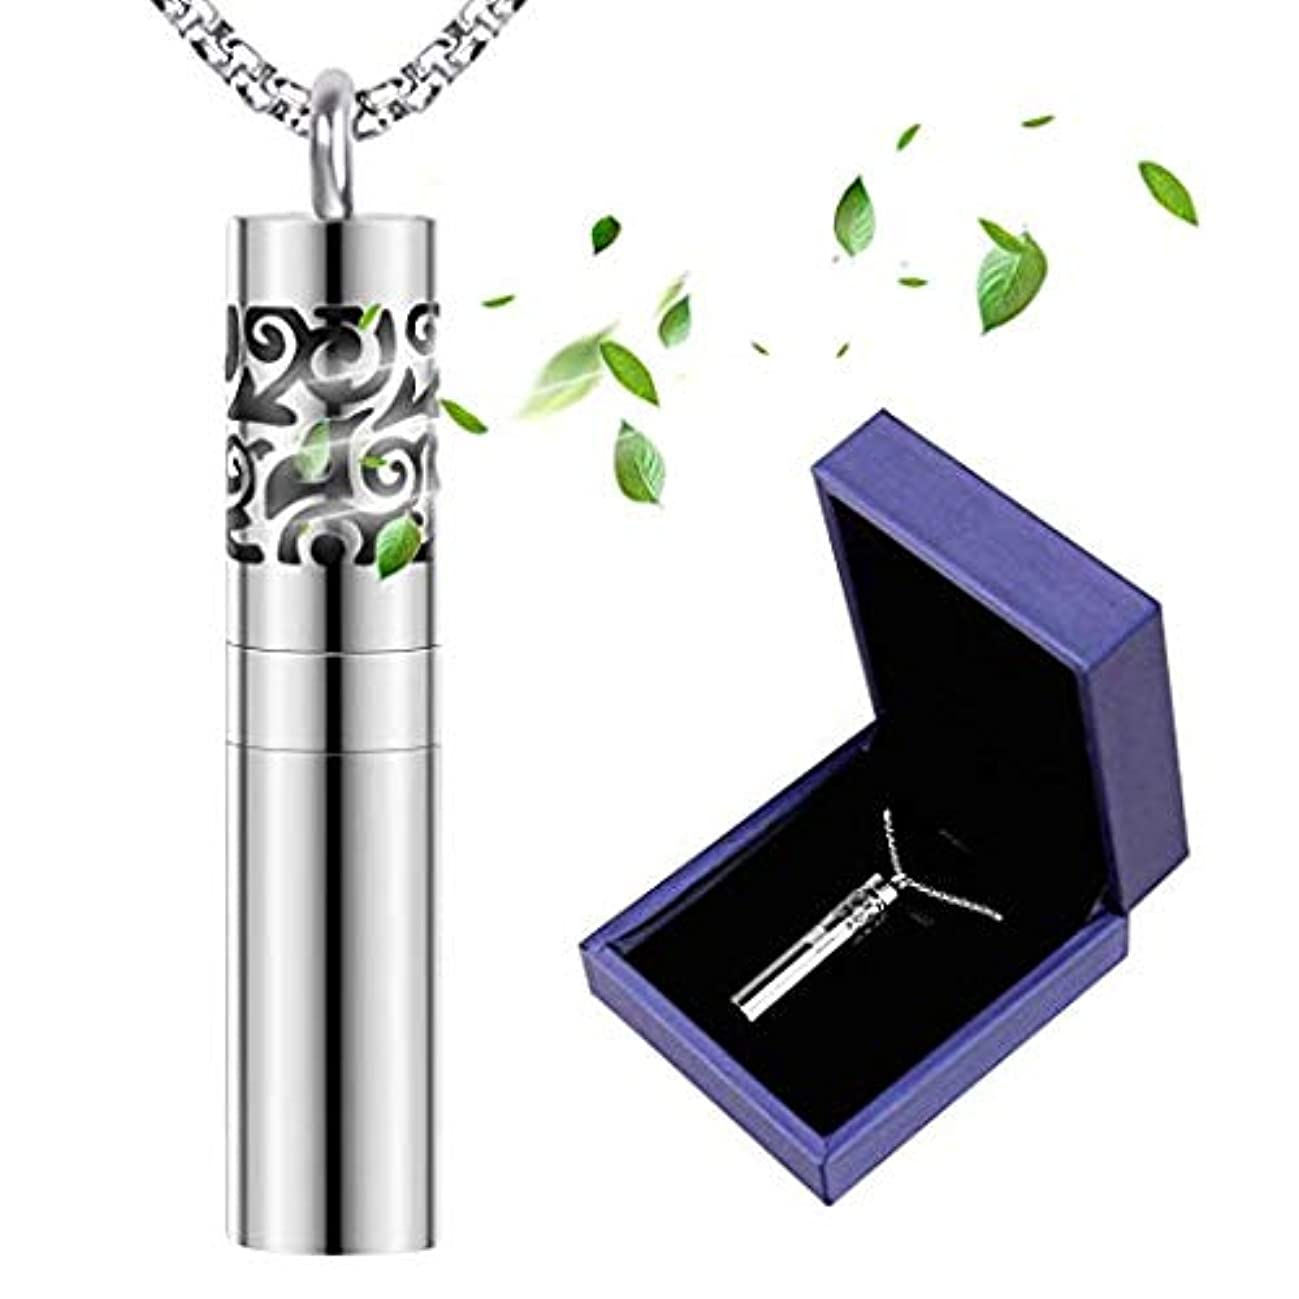 Birthday Gifts for Women, Romanda Diffuser Necklace with Dispenser and Container Stainless Steel Aromatherapy Essential Oil Diffuser Pendant Locket Necklace with 8 Pad Jewelry for Women Valentine Day